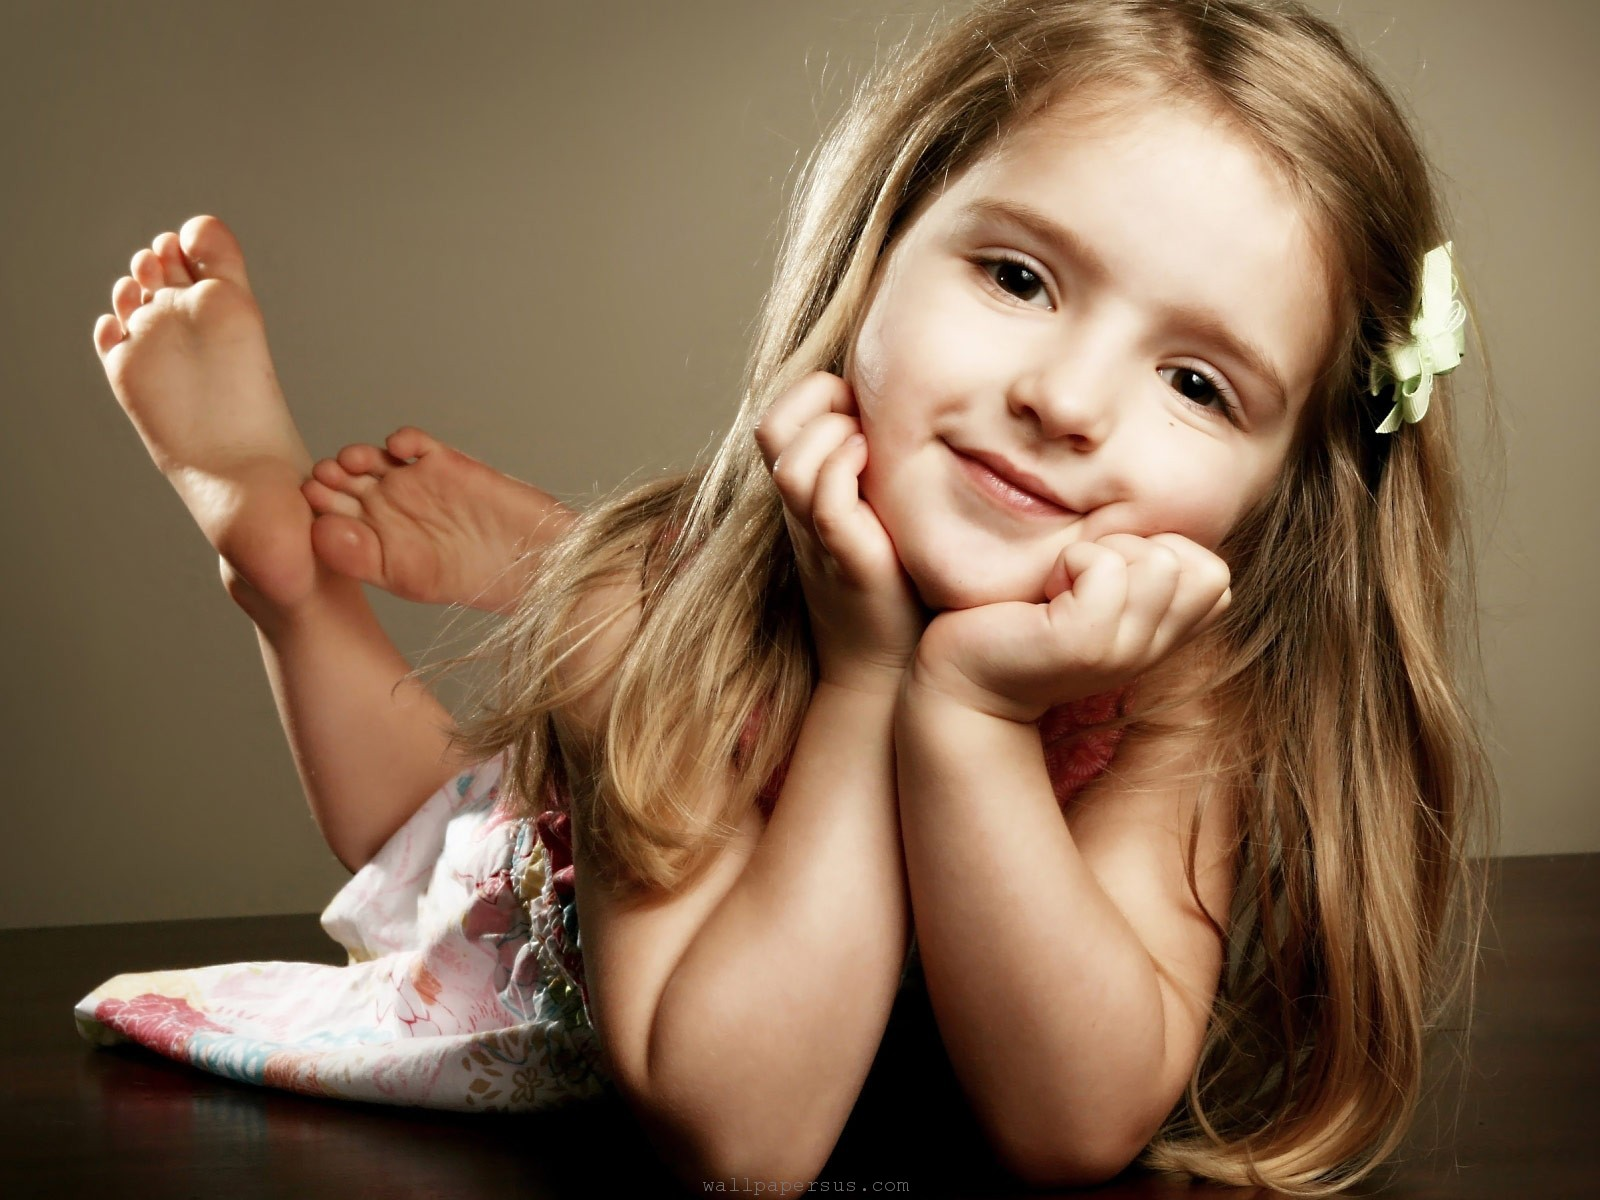 6924728-little-girl-smile